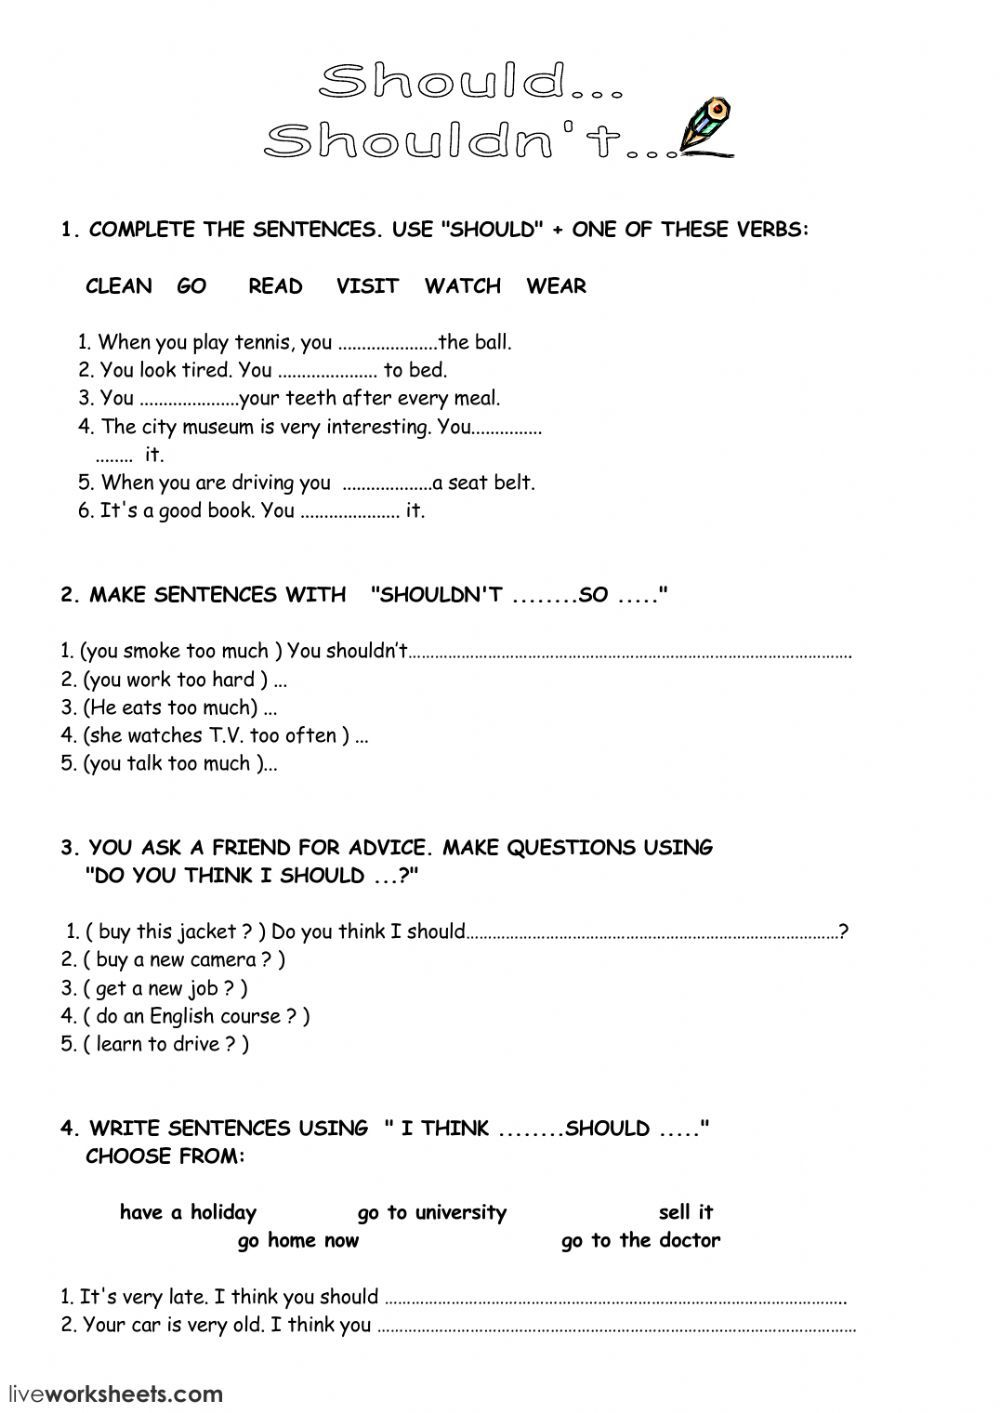 Contoh Soal Modal Auxiliary : contoh, modal, auxiliary, Modal, Verbs, Online, Worksheet, Intermediate., Exercises, Download, Work…, Ejercicios, Ingles,, Vocabulario